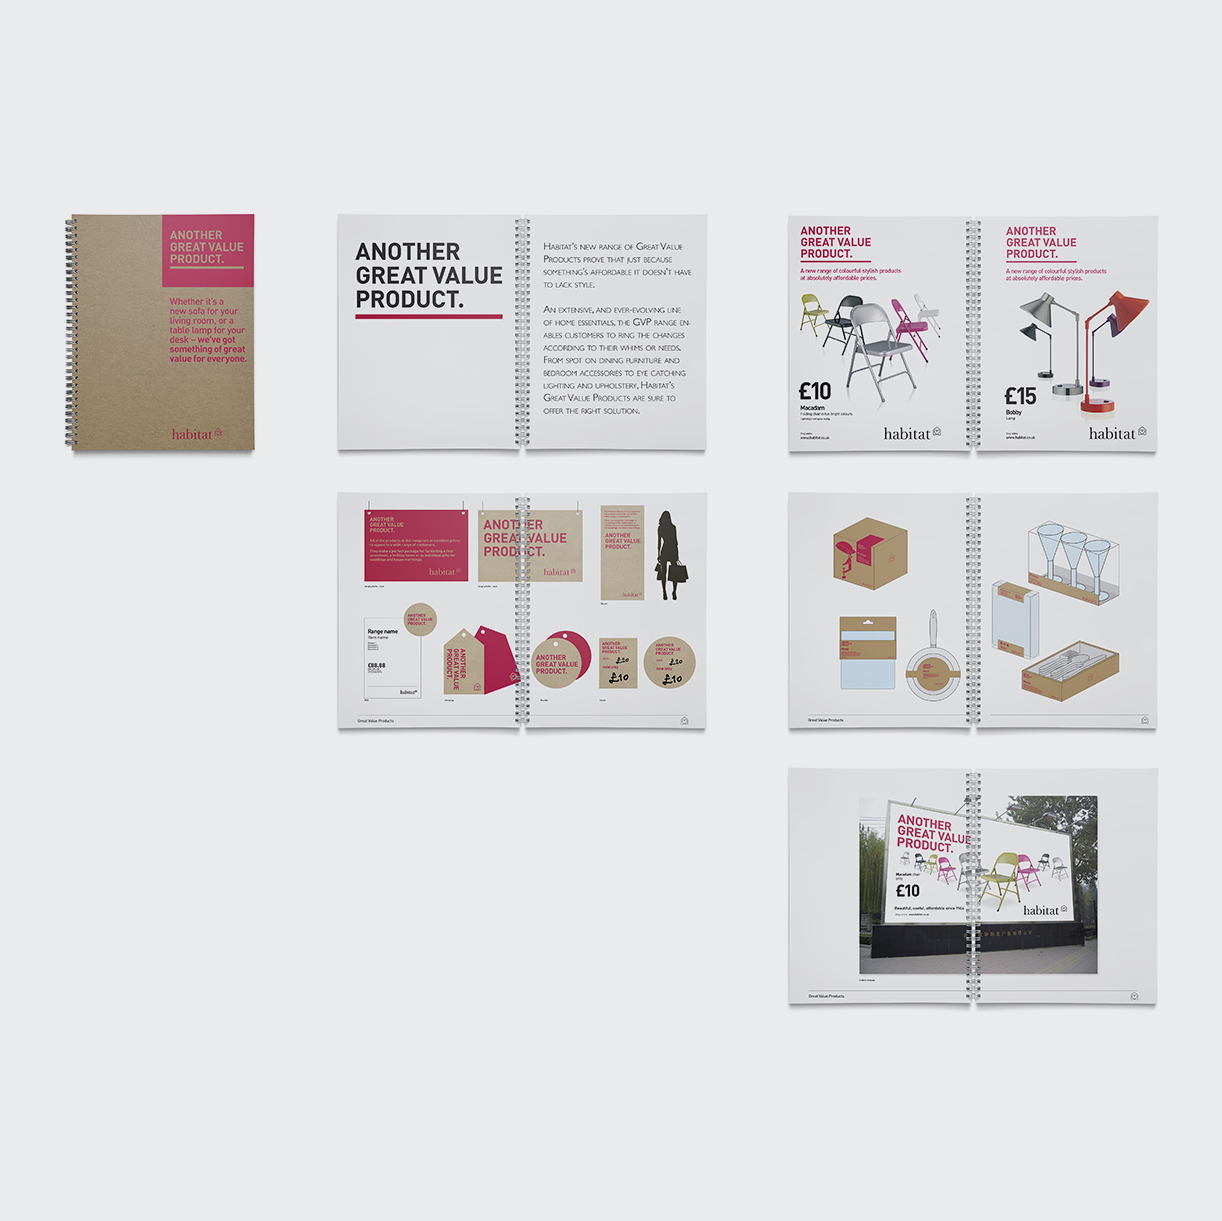 Another Great Value Product. Another Great Value Product. Brand design, created for Habitat as Creative Director for 5 years.